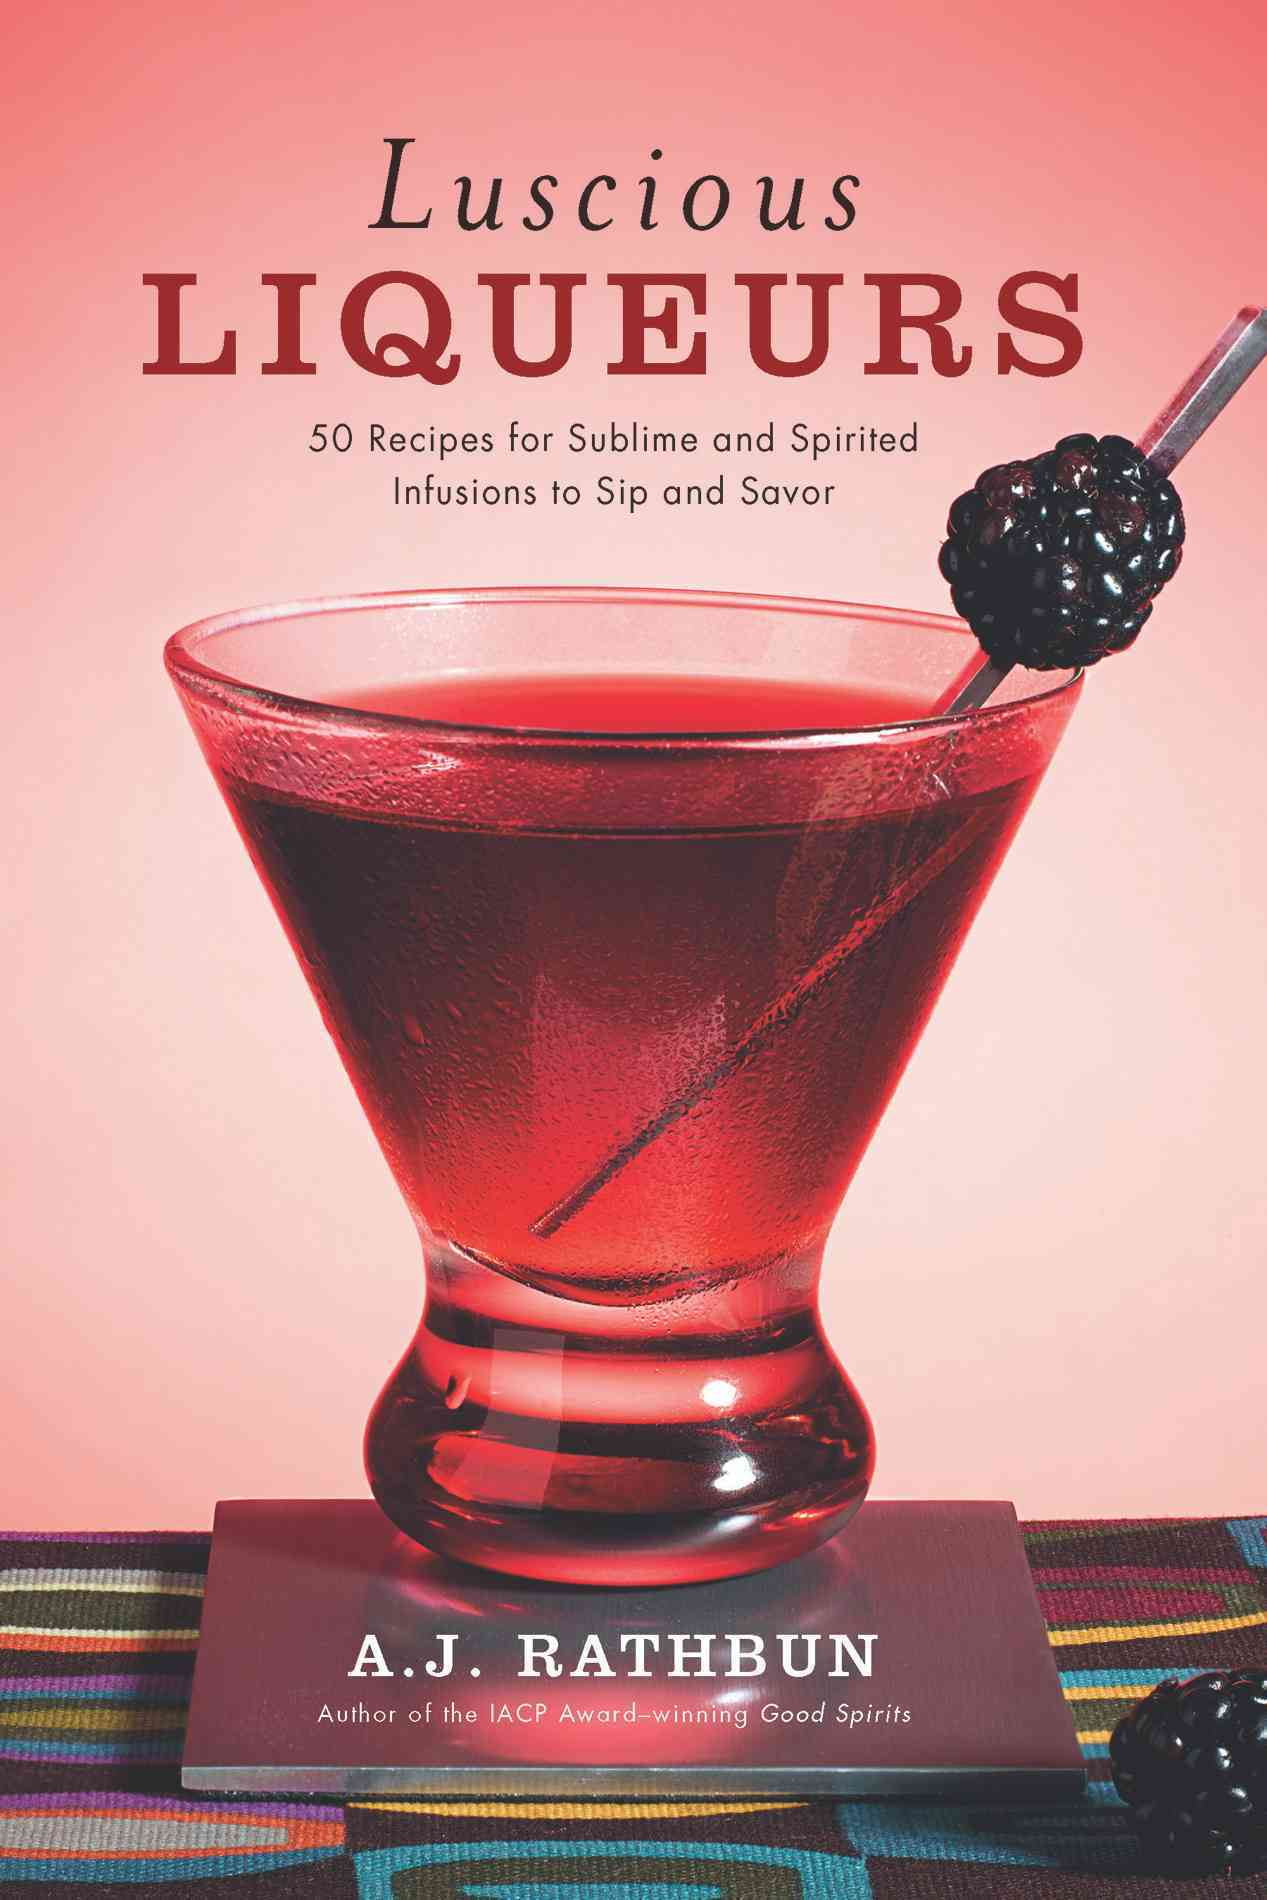 Luscious Liqueurs: 50 Recipes for Sublime and Spirited Infusions to Sip and Savor (Hardcover)